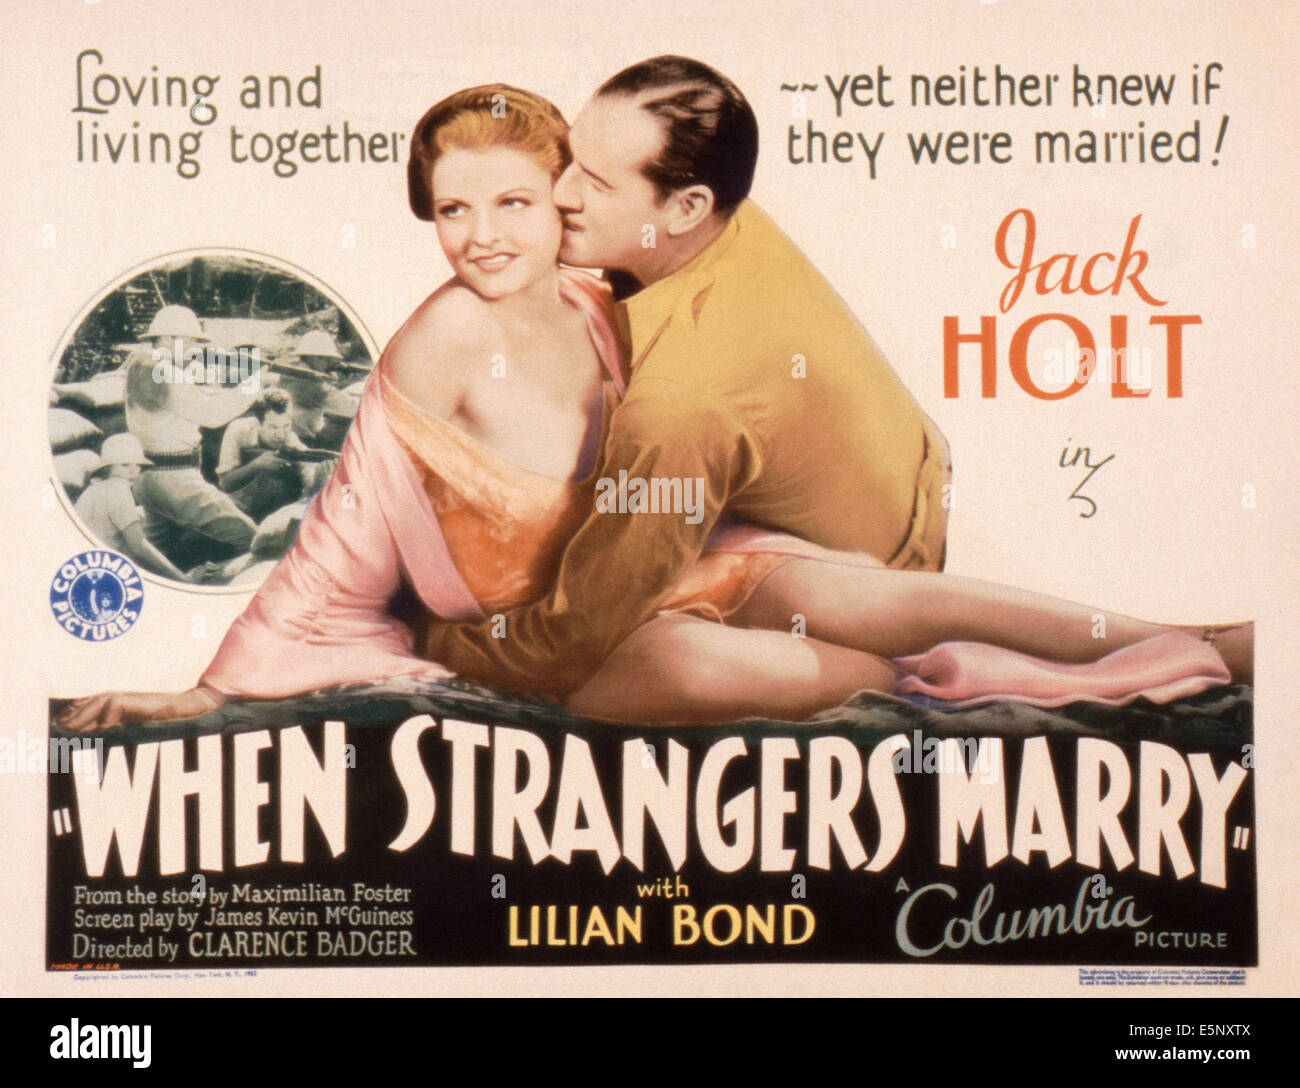 WHEN STRANGERS MARRY, US lobbycard, Lilian Bond, Jack Holt, 1933 - Stock Image